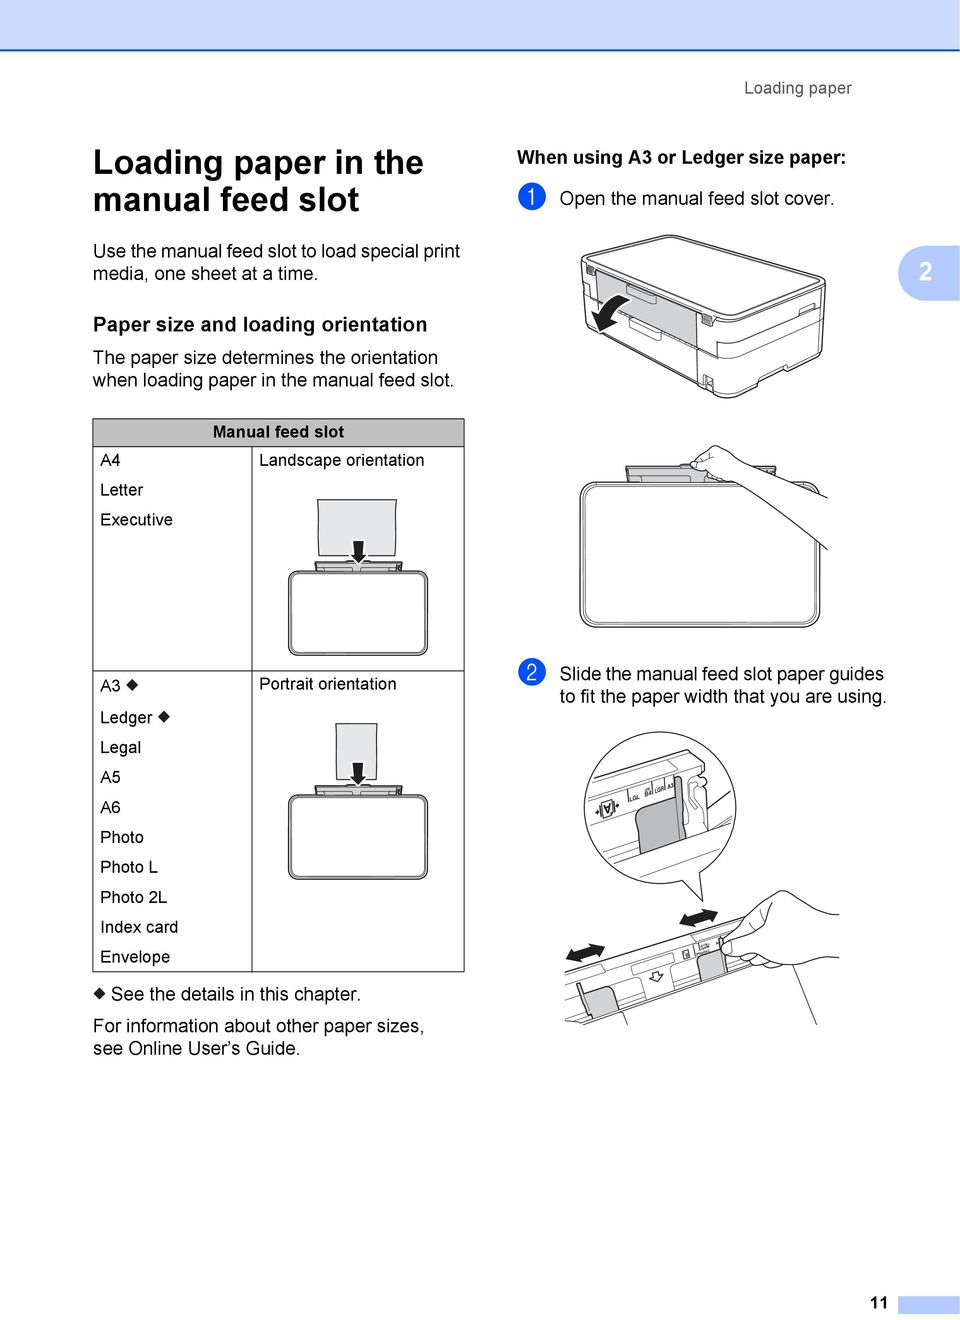 2 Paper size and loading orientation 2 The paper size determines the orientation when loading paper in the manual feed slot.